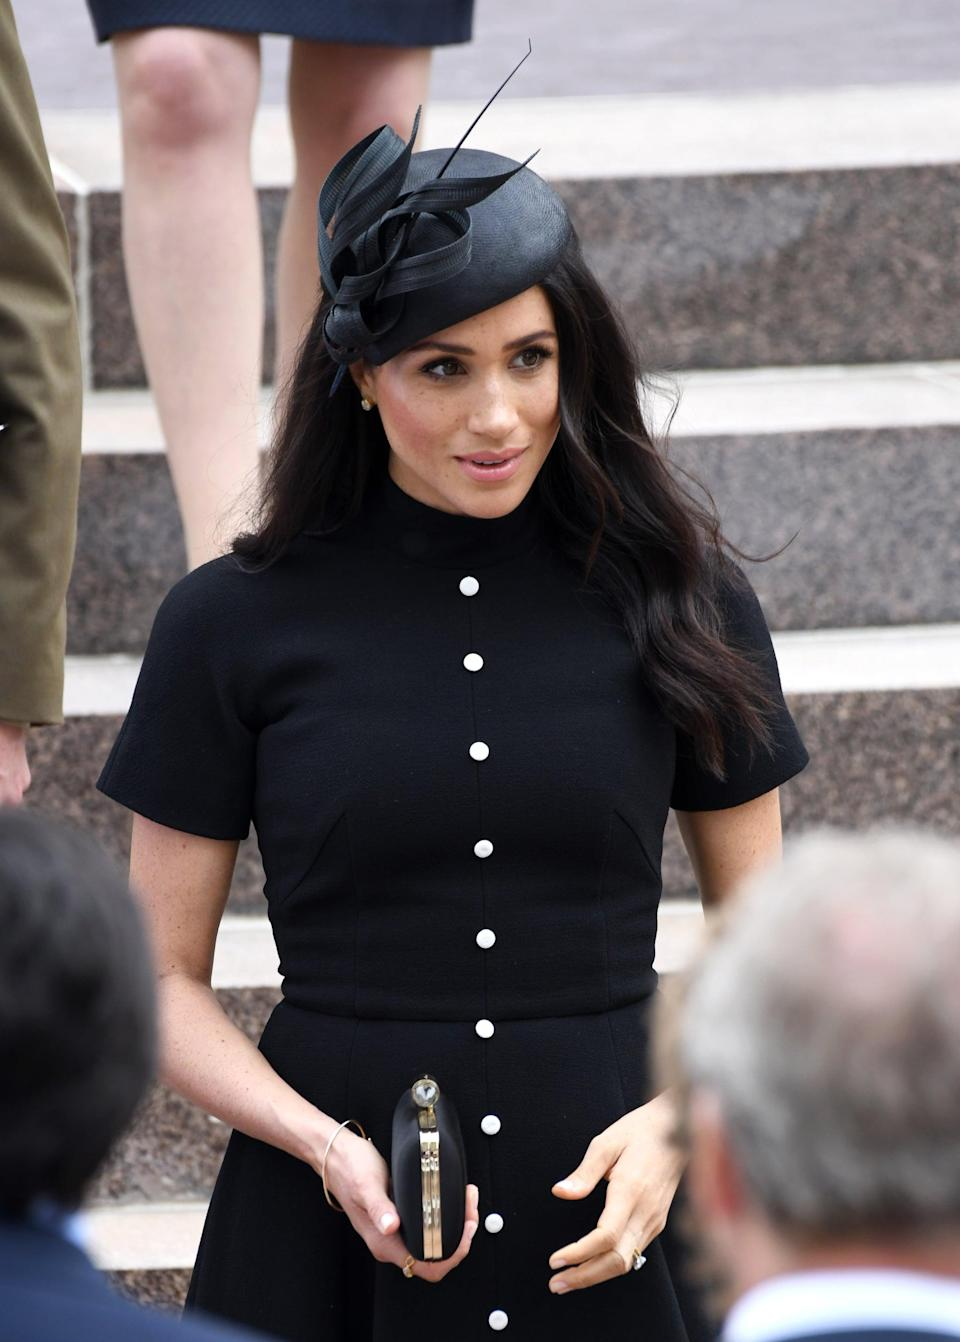 """<p>The duchess brought out <a href=""""https://www.popsugar.co.uk/beauty/photo-gallery/44301768/image/46295540/Meghan-Markle-Philip-Treacy-Hat-Half-Up-Hair-2018"""" class=""""link rapid-noclick-resp"""" rel=""""nofollow noopener"""" target=""""_blank"""" data-ylk=""""slk:this sophisticated topper once again"""">this sophisticated topper once again</a> for the opening of the extension of the ANZAC Memorial in Hyde Park during her tour of Australia in October 2018.</p>"""